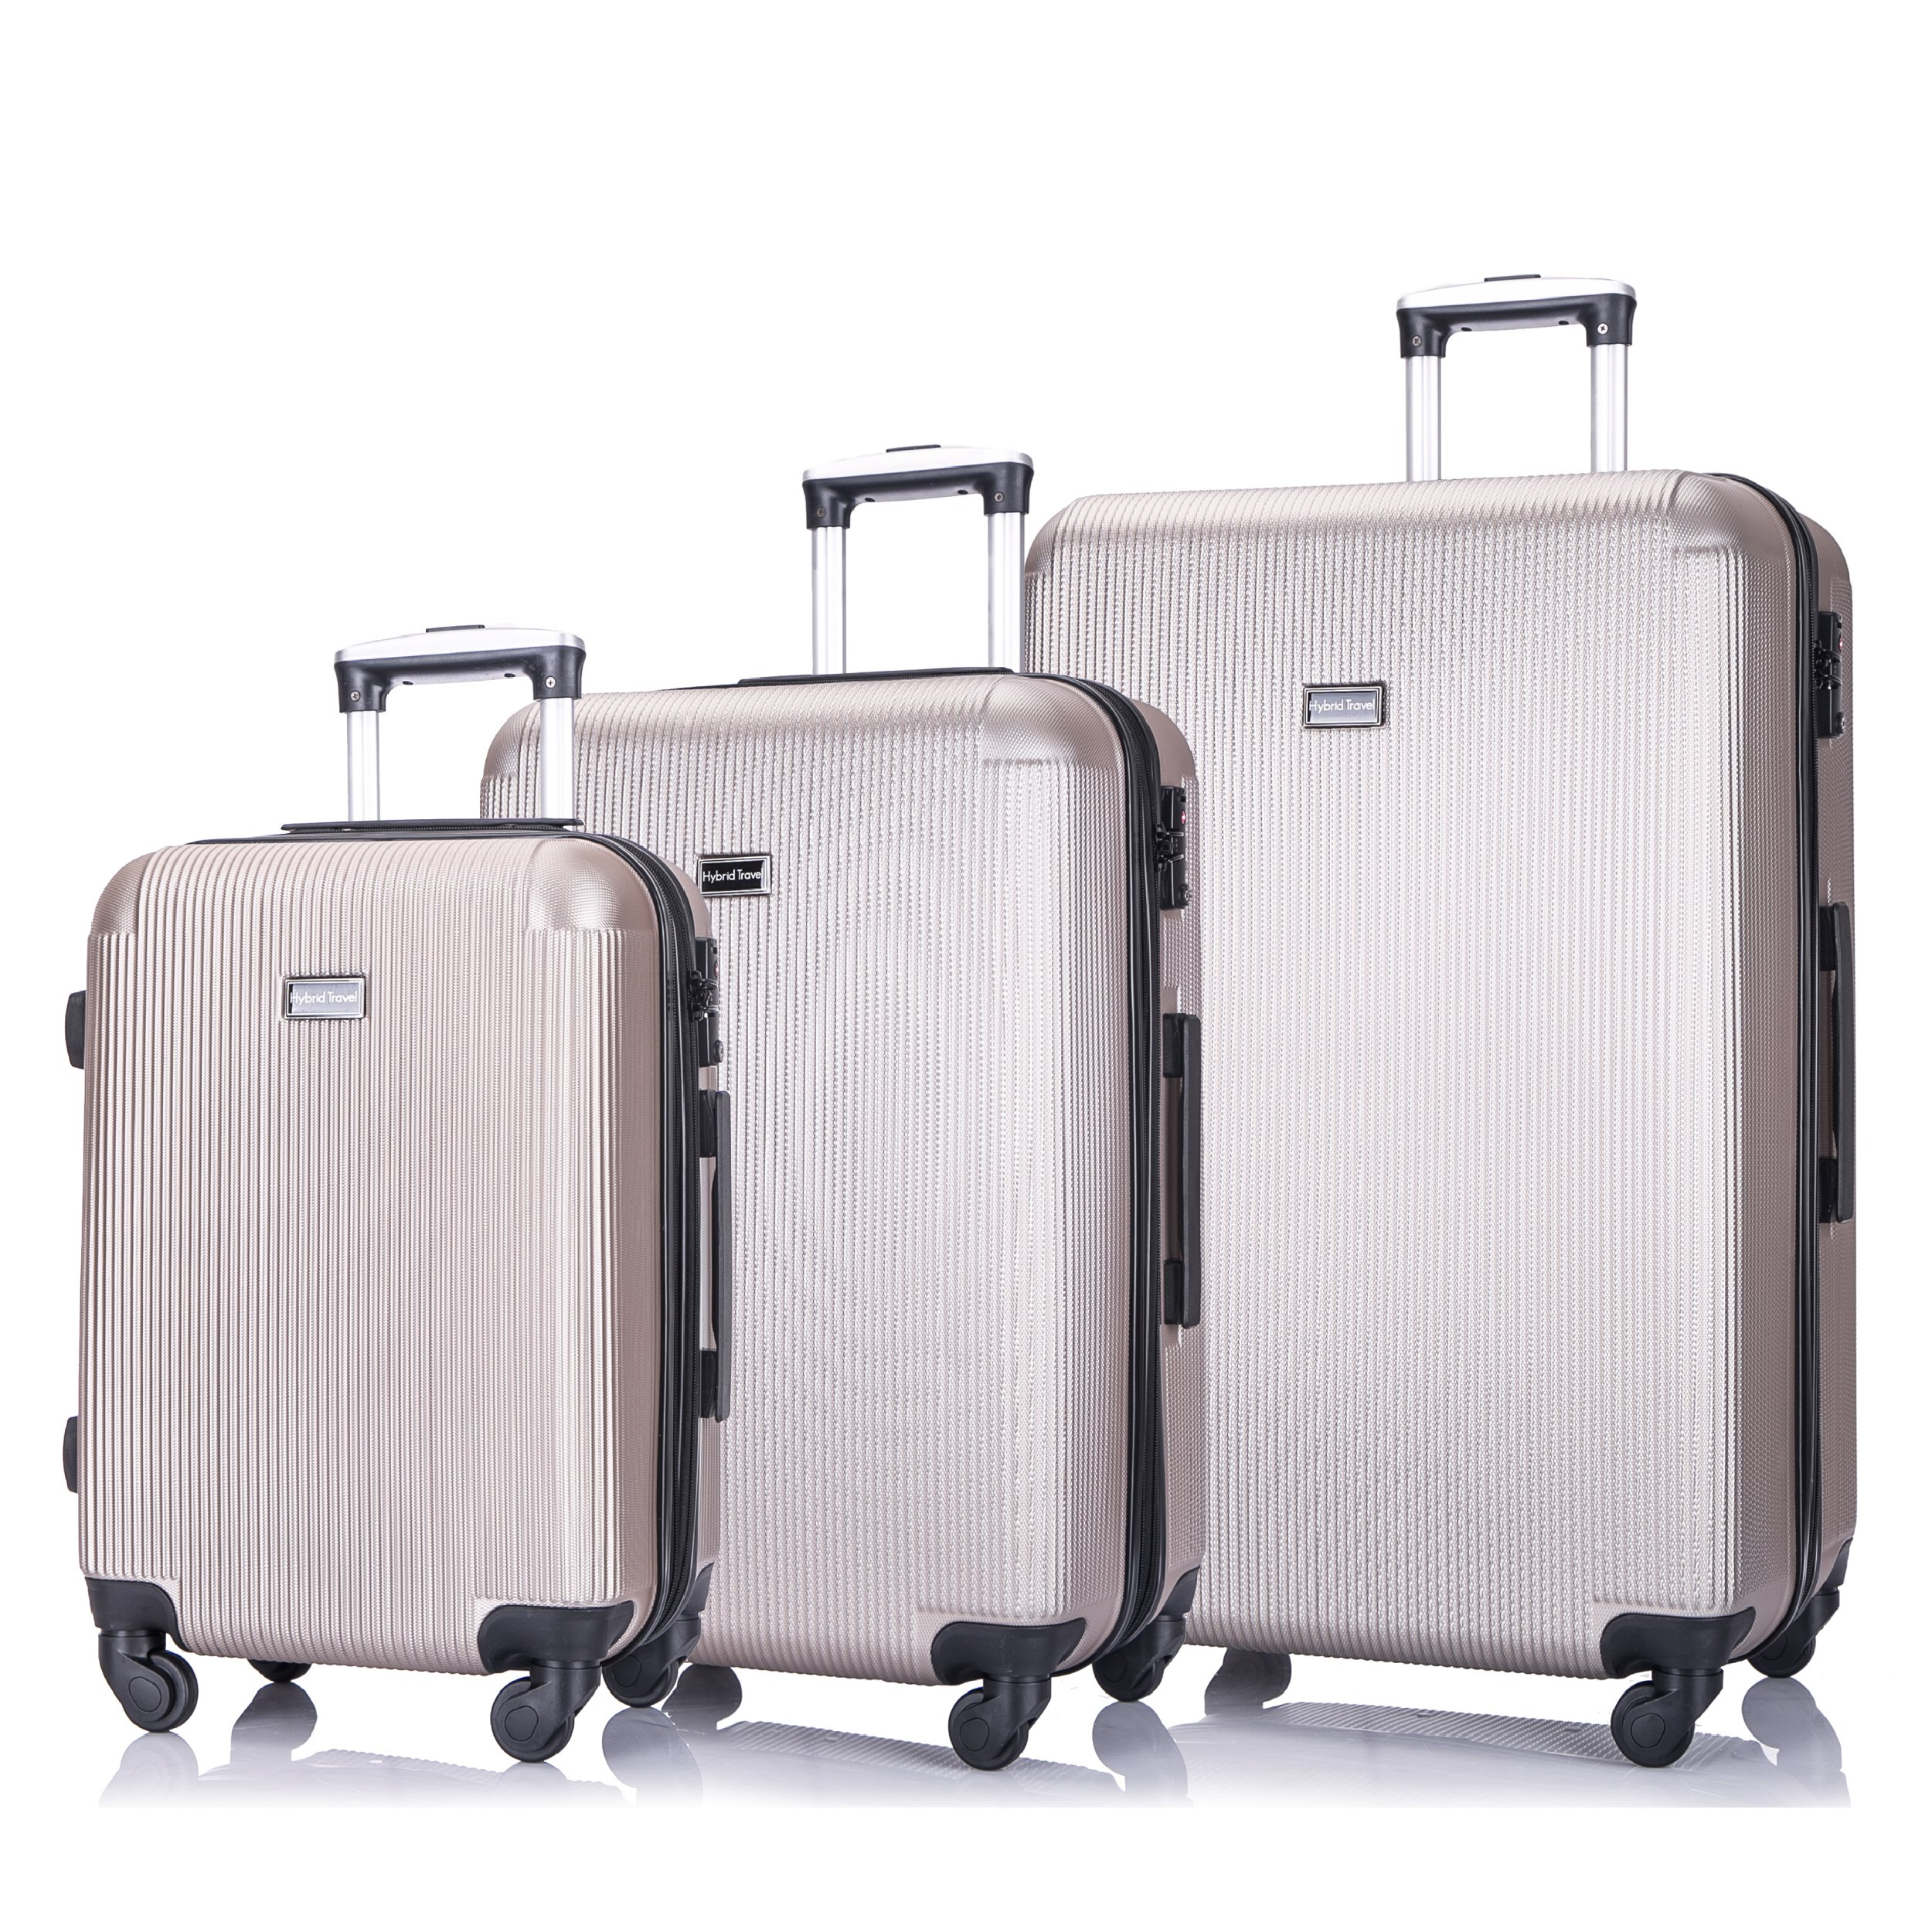 3 Piece Luggage Set Durable Lightweight Hard Case pinner Suitecase 20in24in28in -LUG3-LY71-CHAMPAGNE